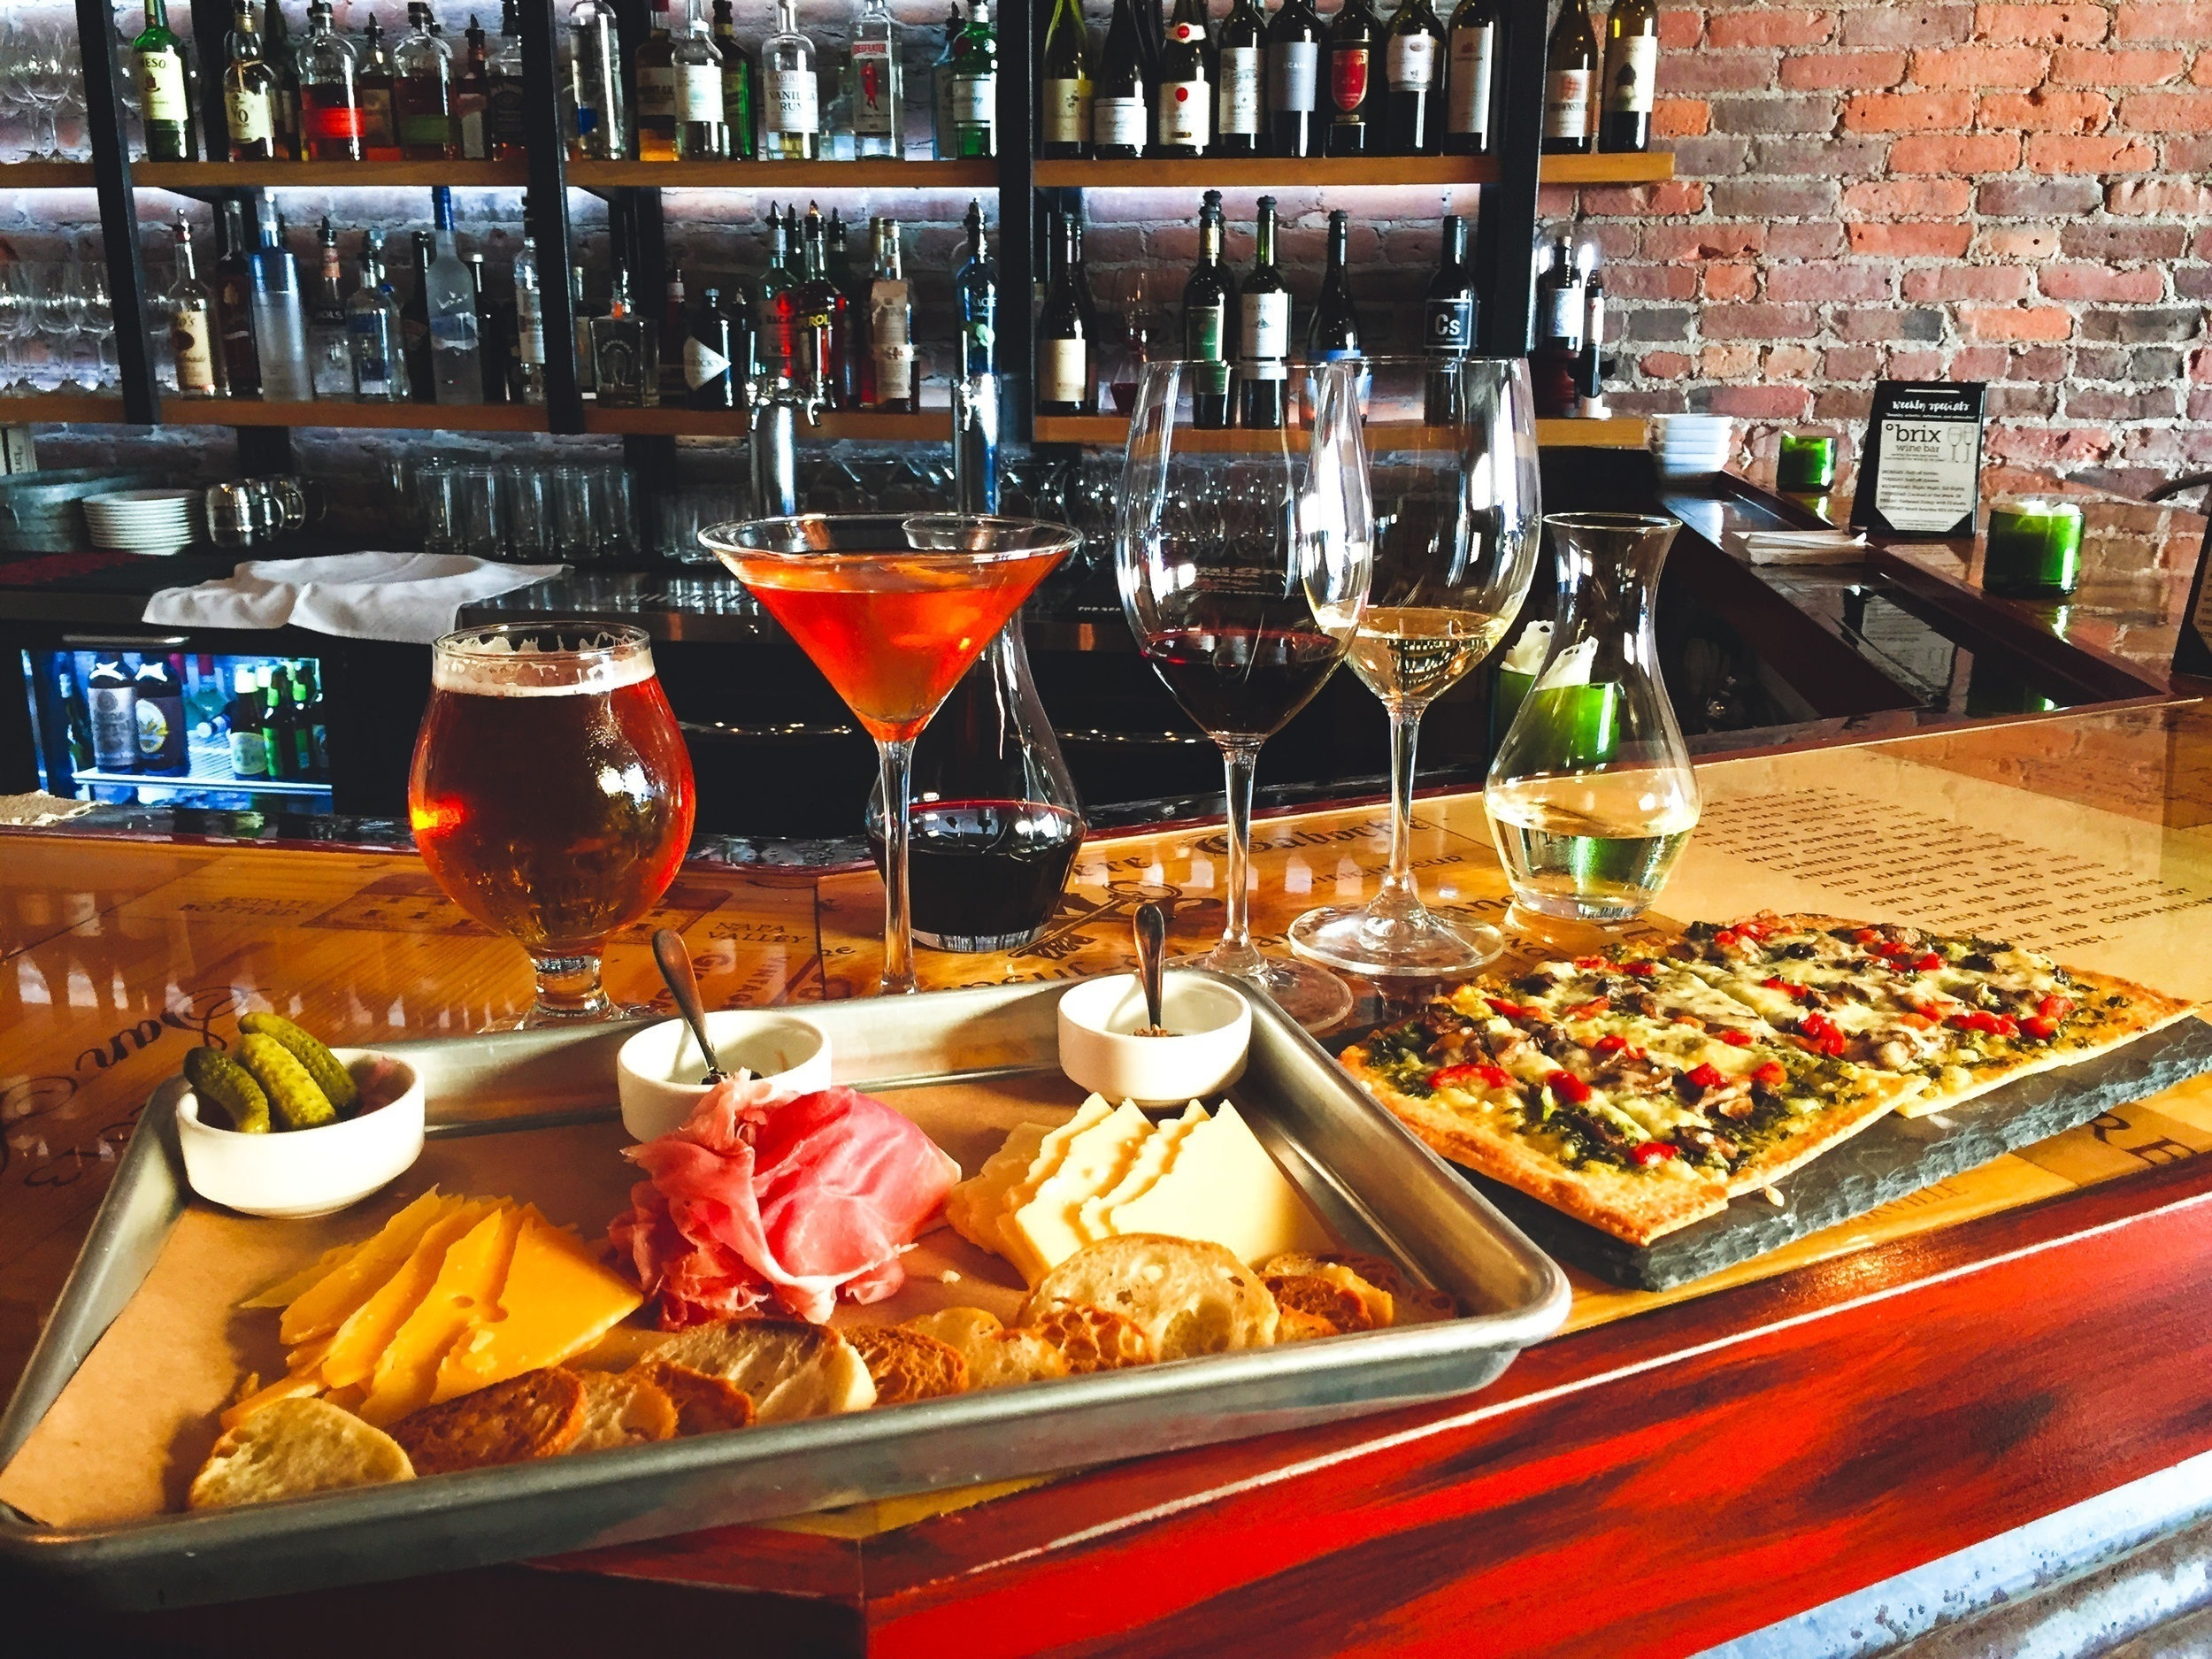 A variety of beer, cocktails, and wines available at Brix Bistro in Rutland.